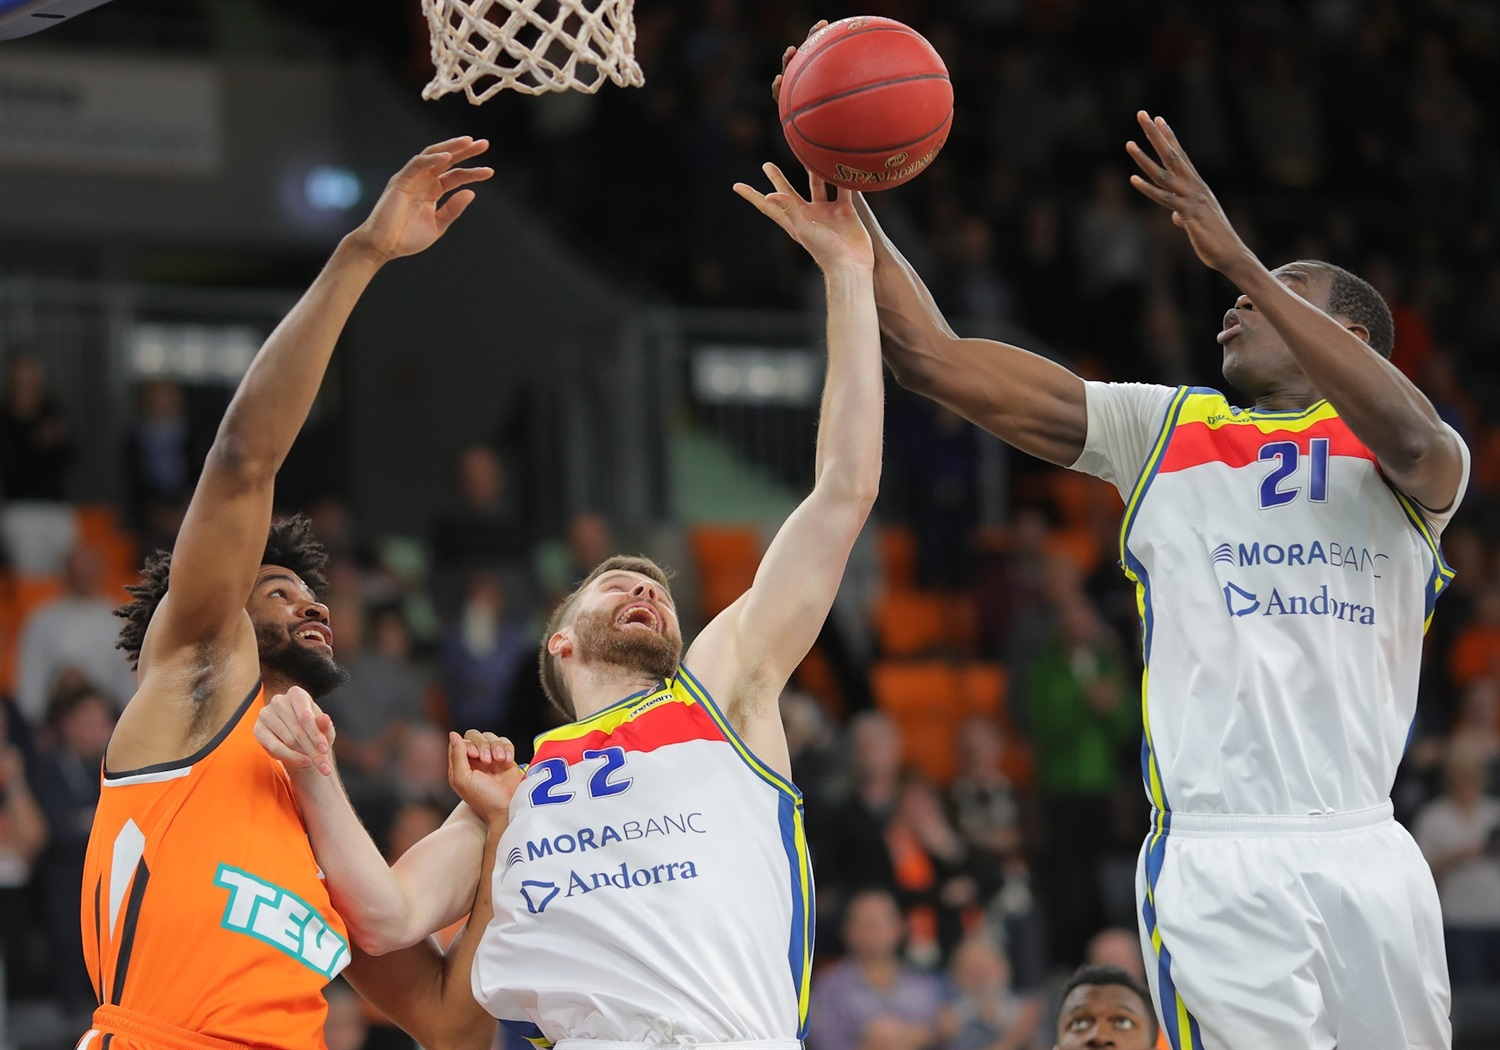 Moussa Diagne - MoraBanc Andorra (photo Ulm - Florian Achberger) - EC18